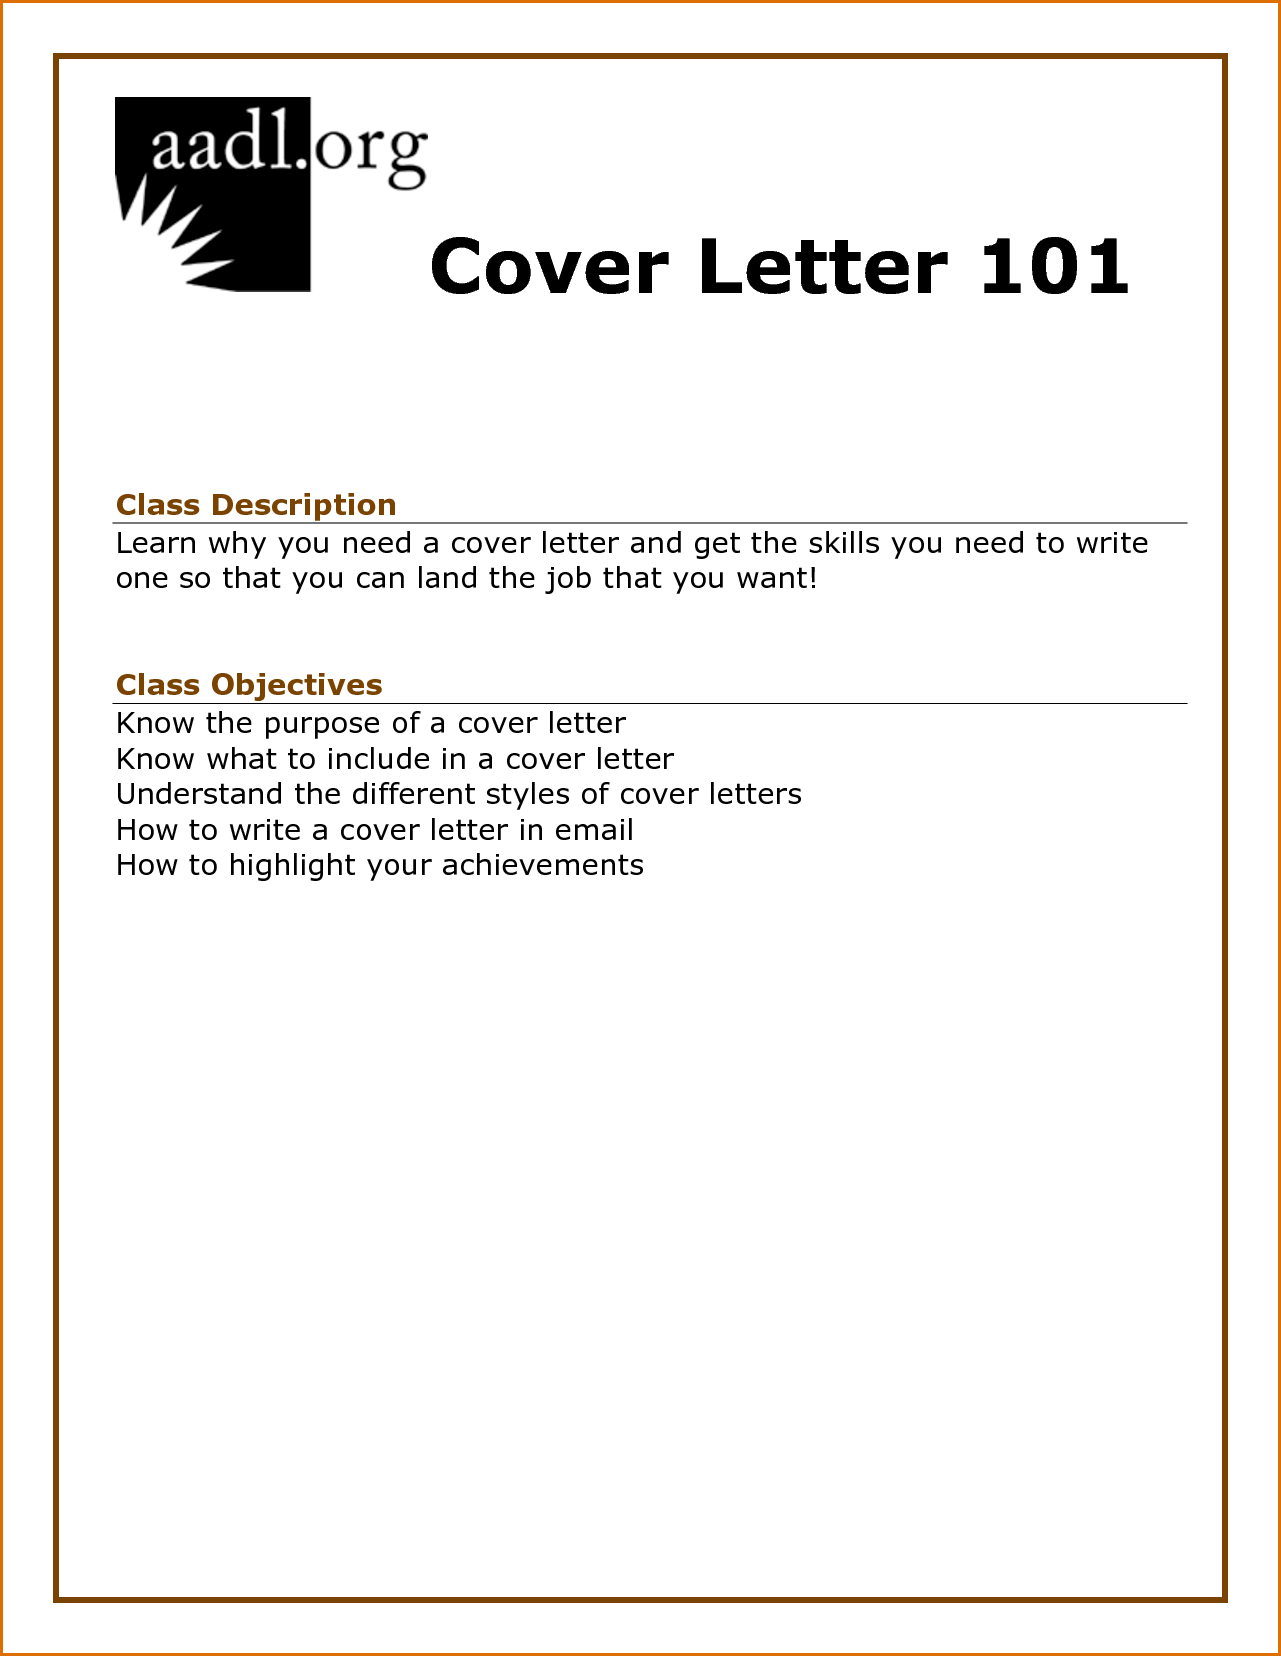 Captivating What Is A Cover Letter For Intended For Whats A Cover Letter